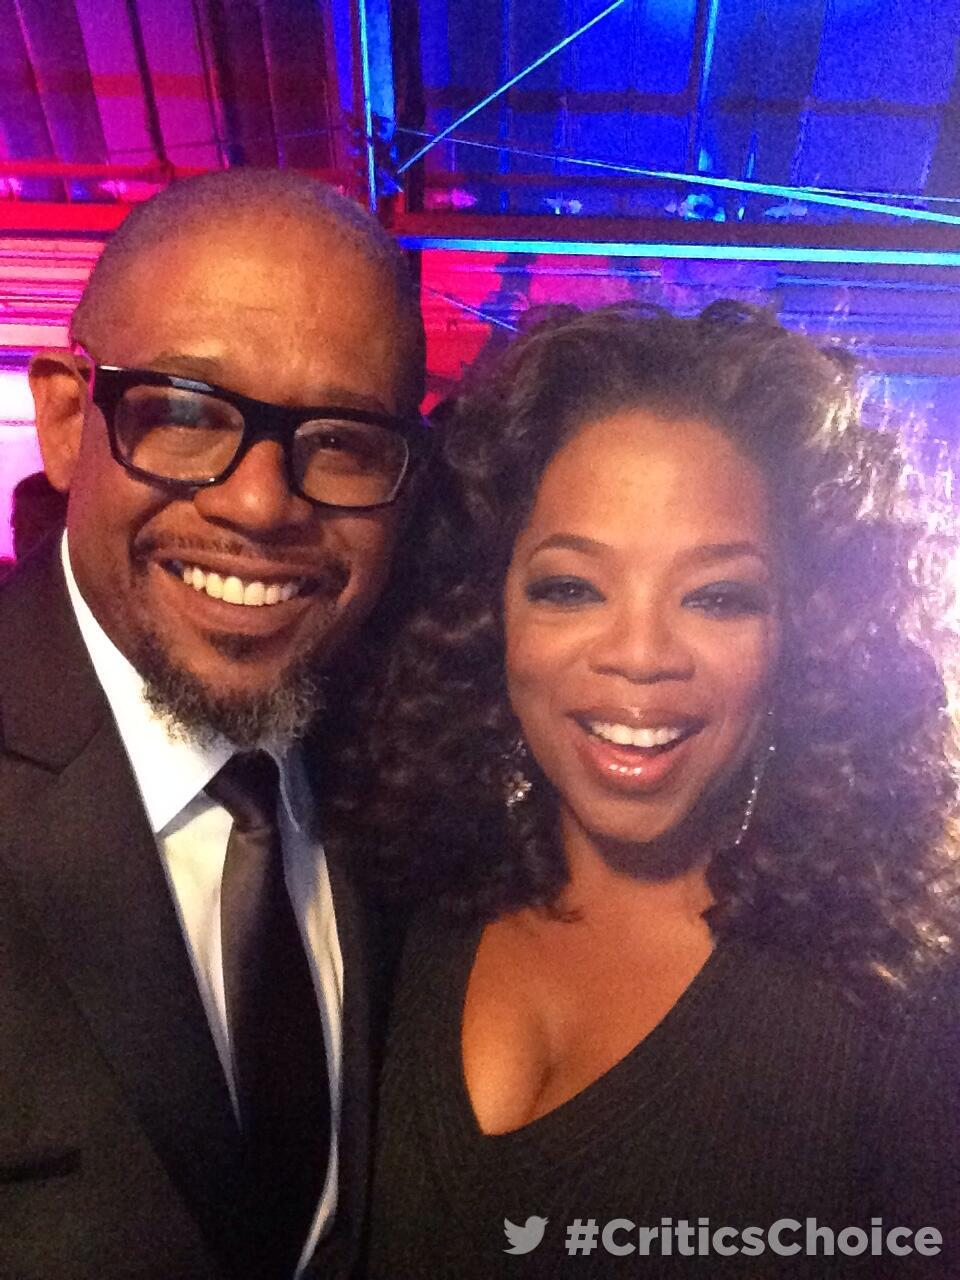 RT @peoplemag: Backstage at #CriticsChoice awards with @oprah, @ForestWhitaker http://t.co/Vl4vt9WNqK